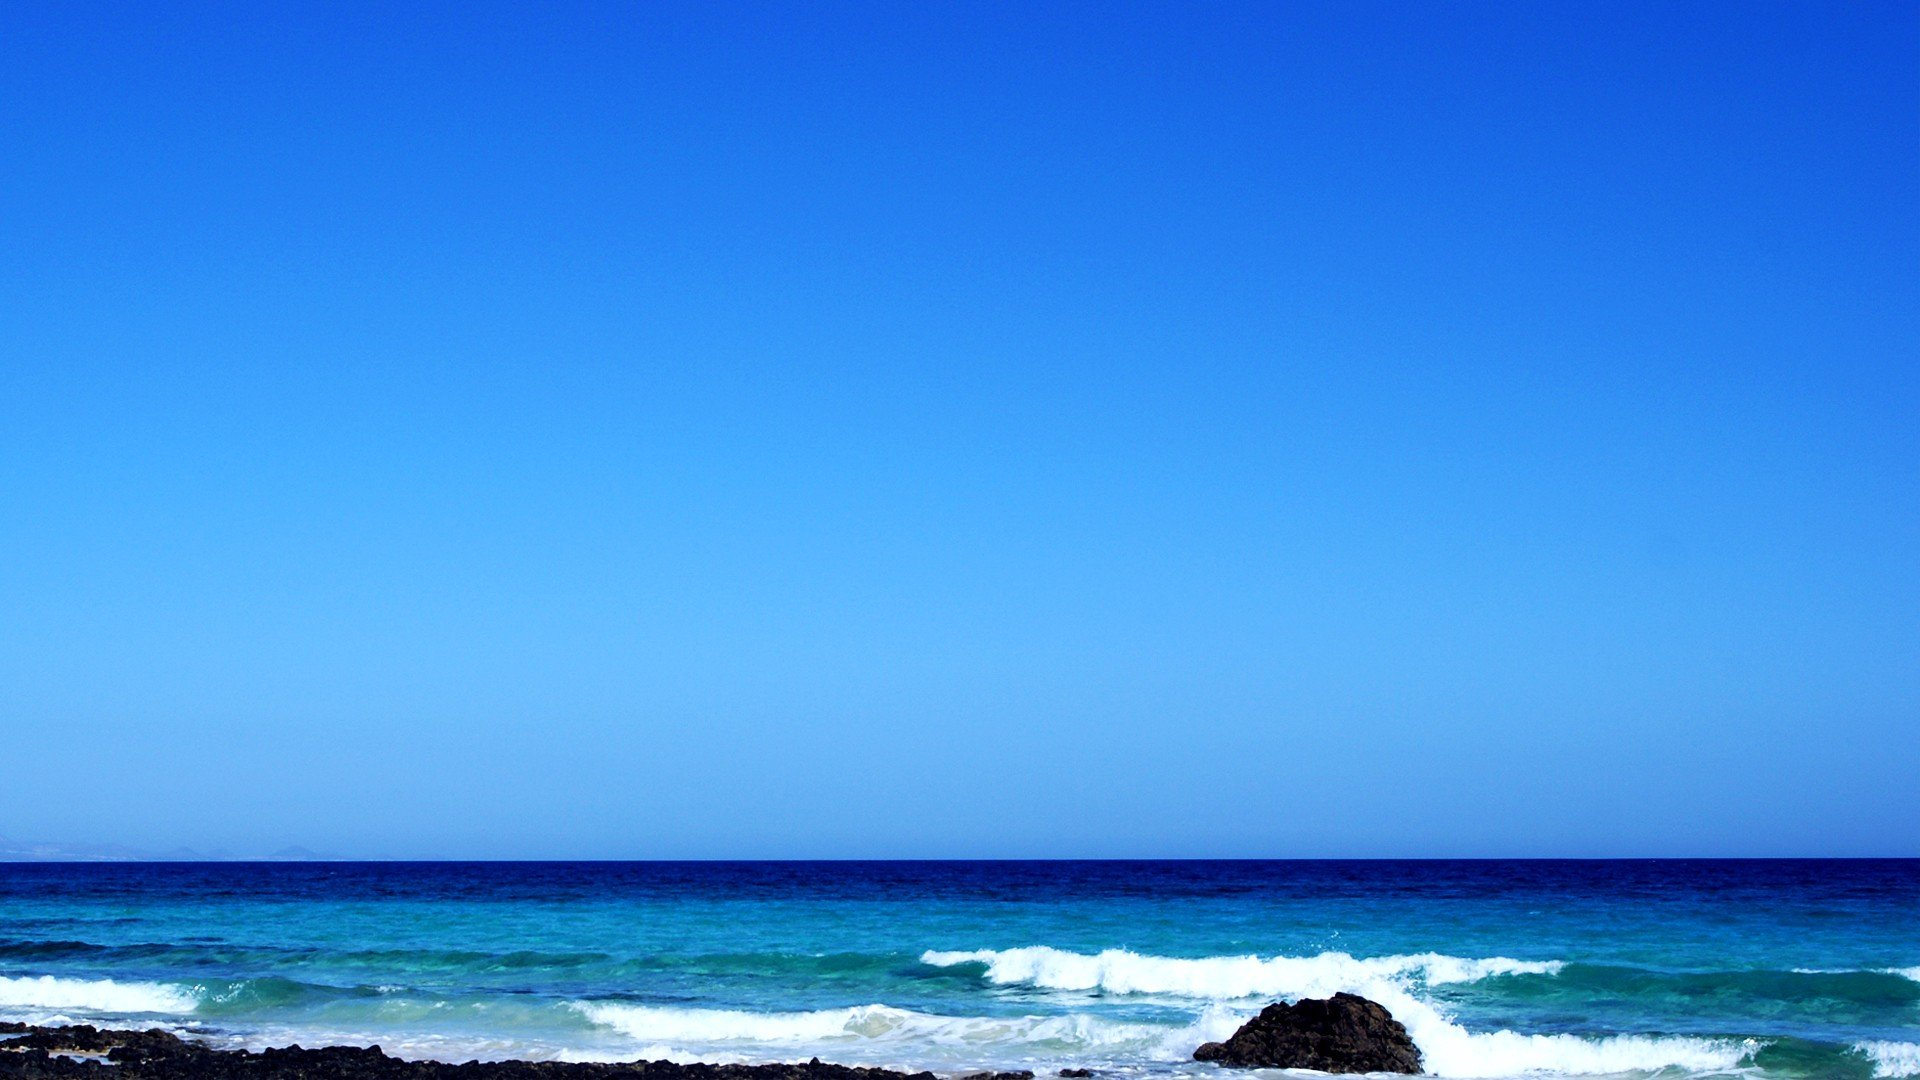 Blue Ocean Background wallpaper   1143099 1920x1080